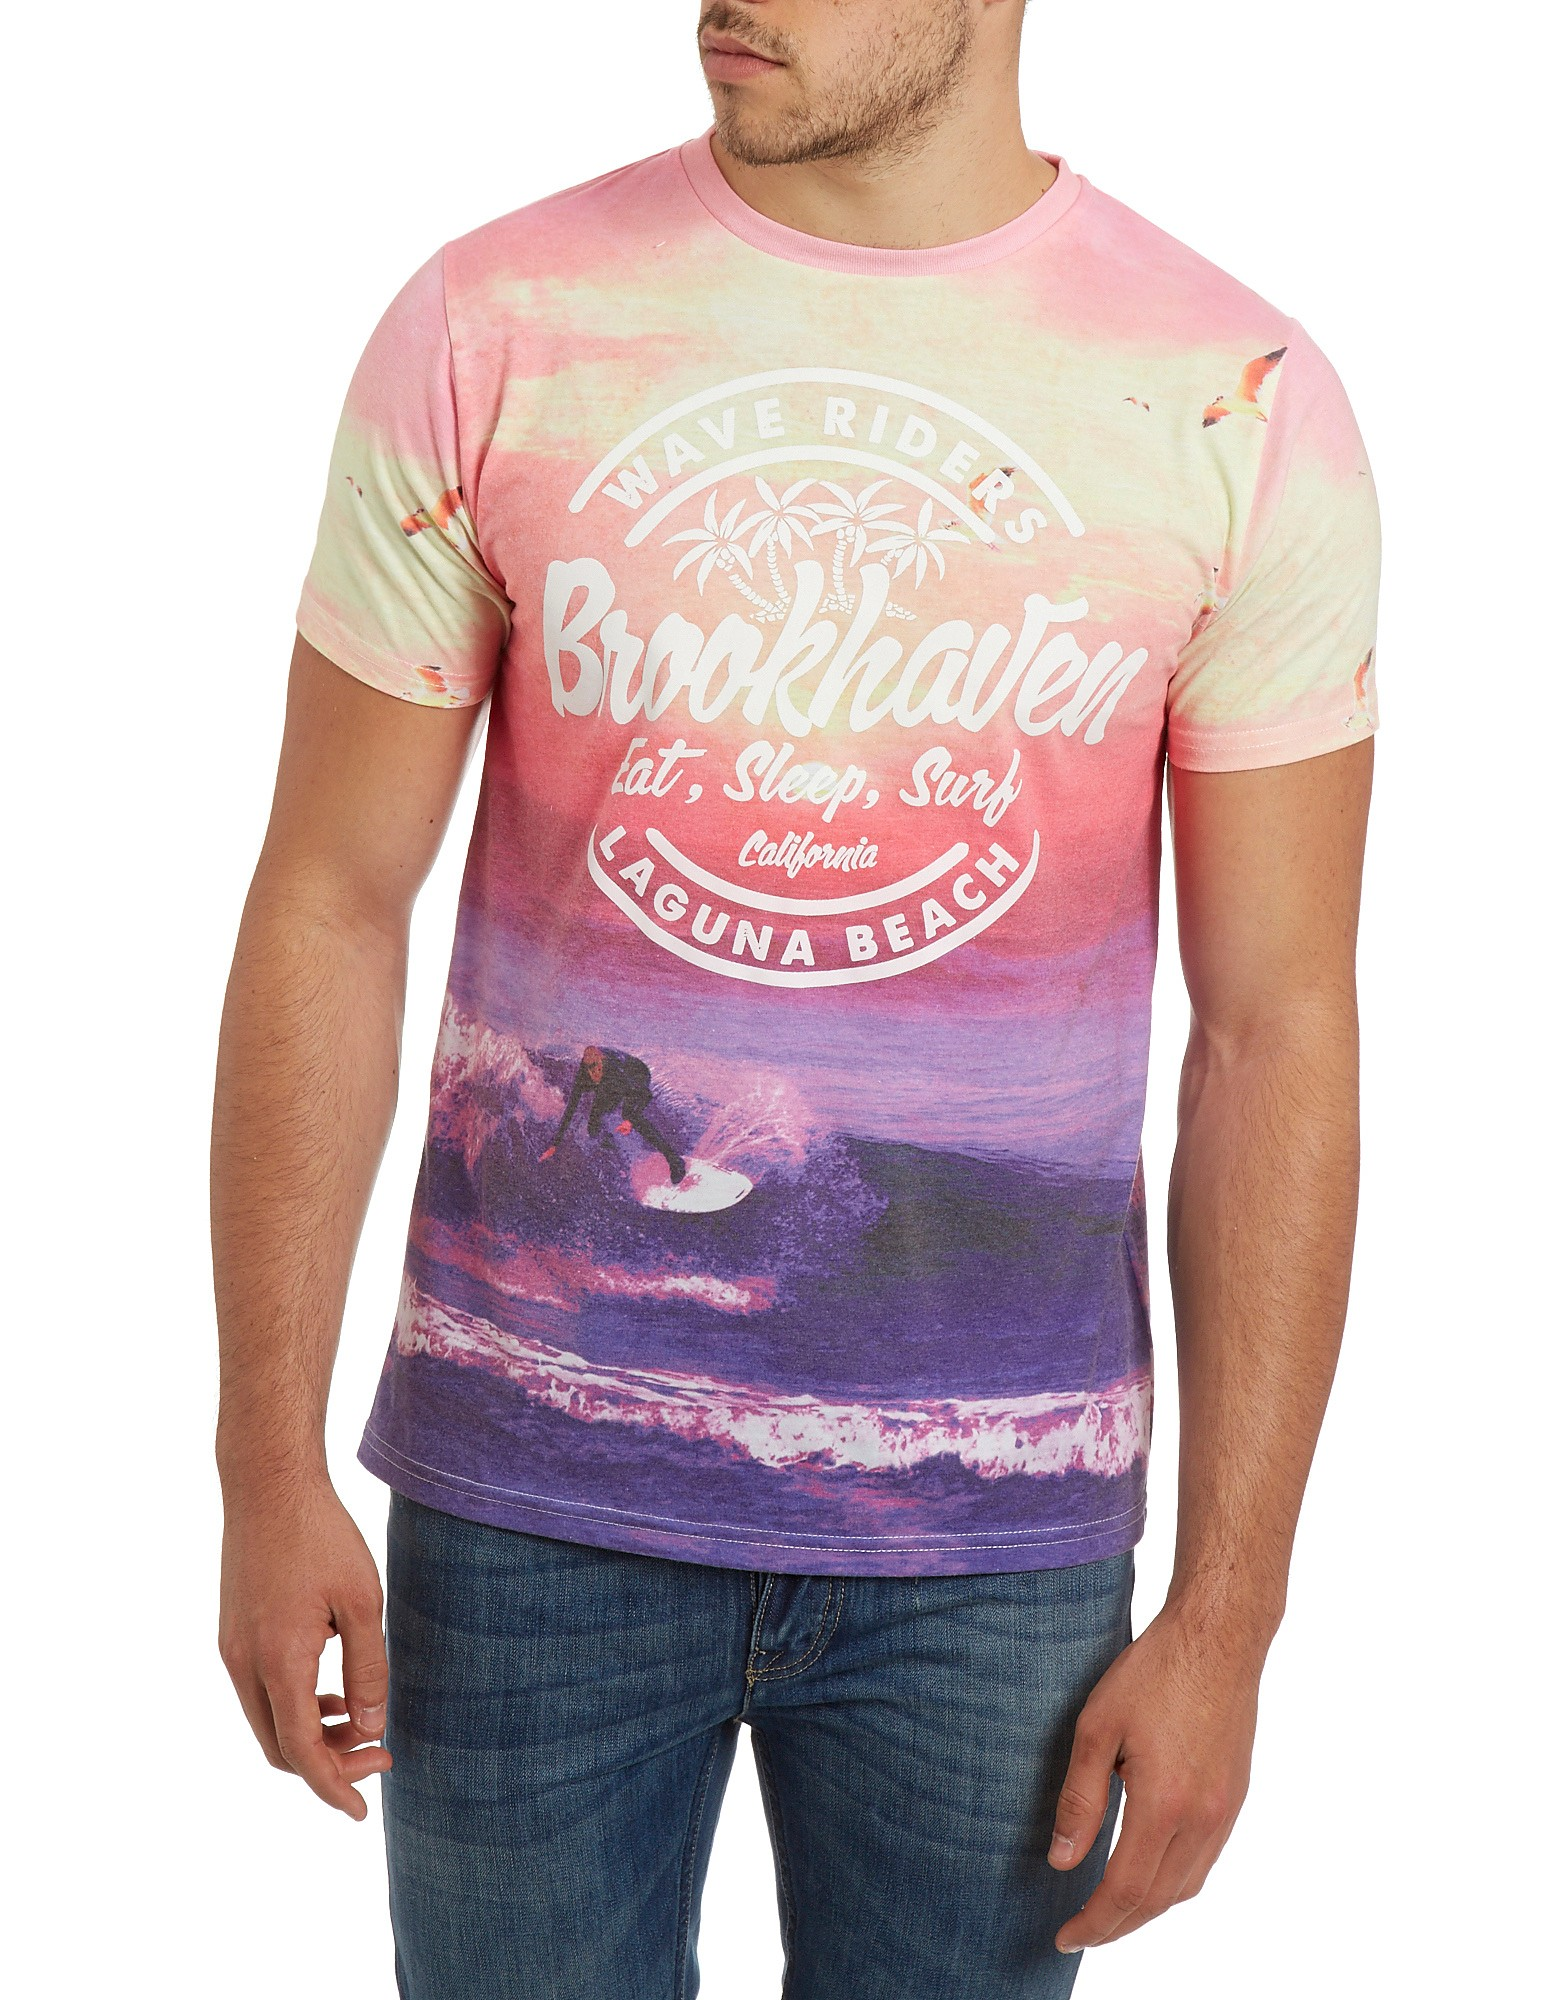 Brookhaven Surfer T-Shirt product image